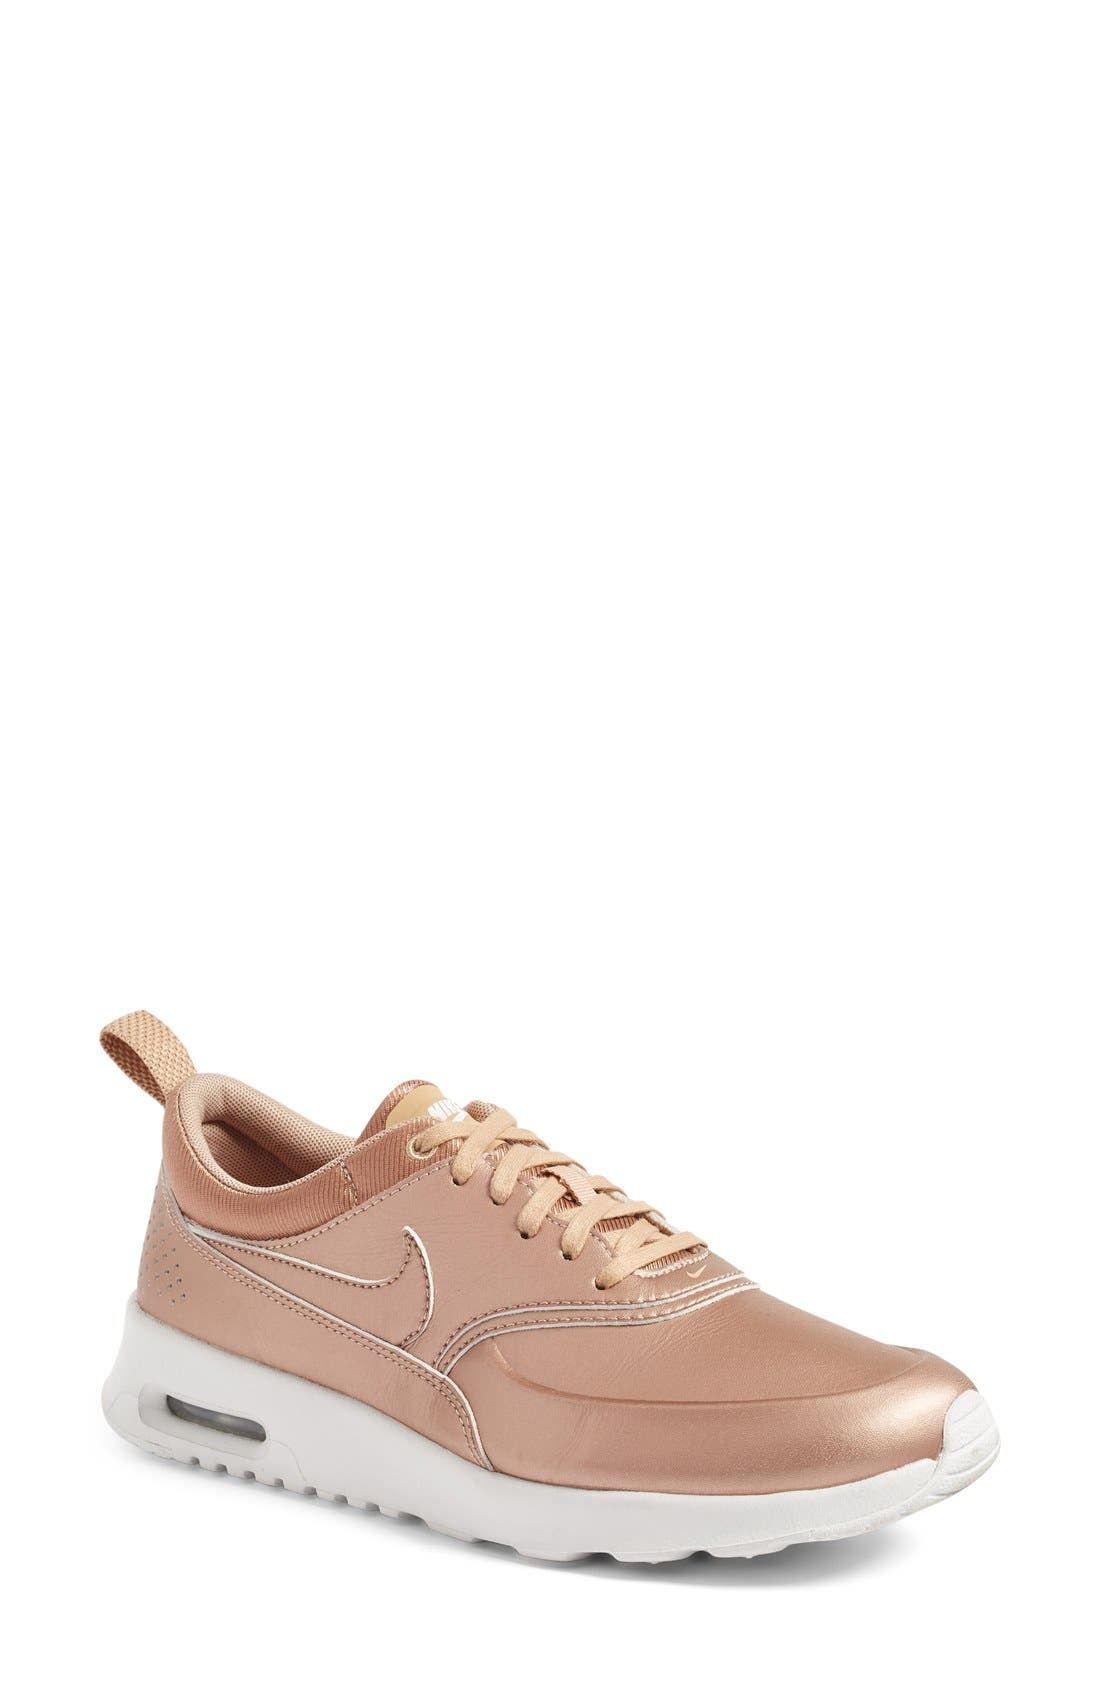 Air Max Thea SE Sneaker,                             Main thumbnail 1, color,                             Metallic Bronze